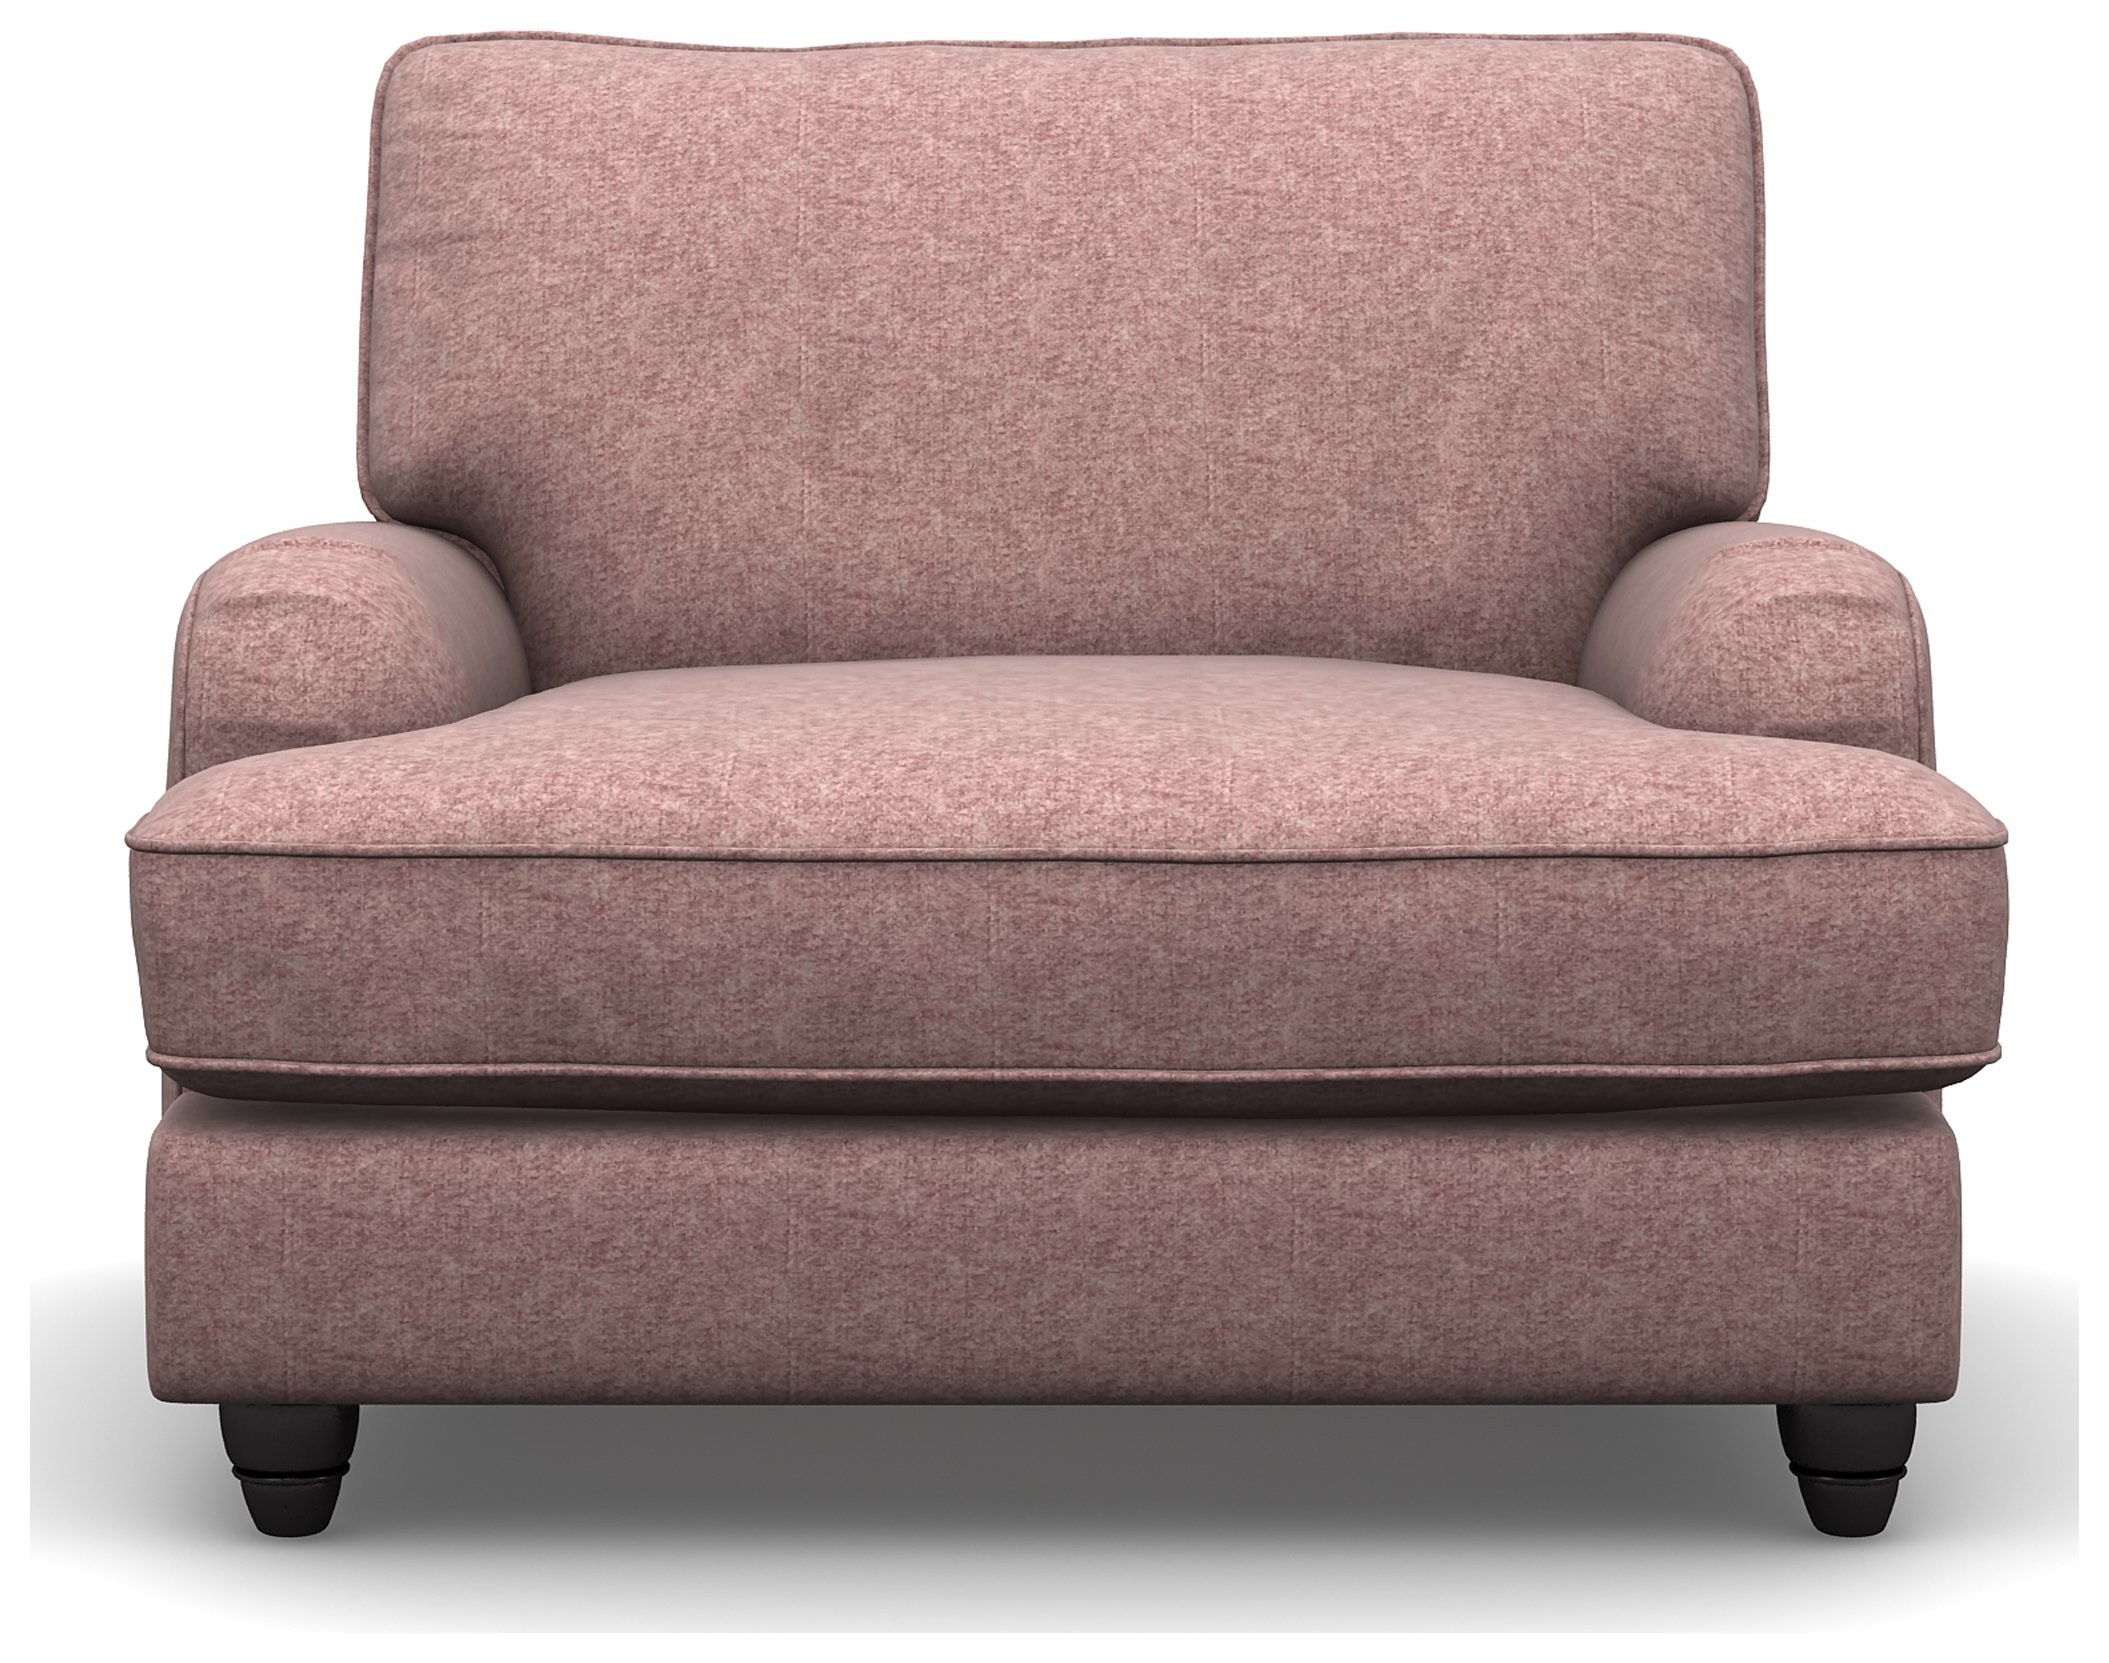 Heart of House Adeline Tweed Fabric Chair - Pink.